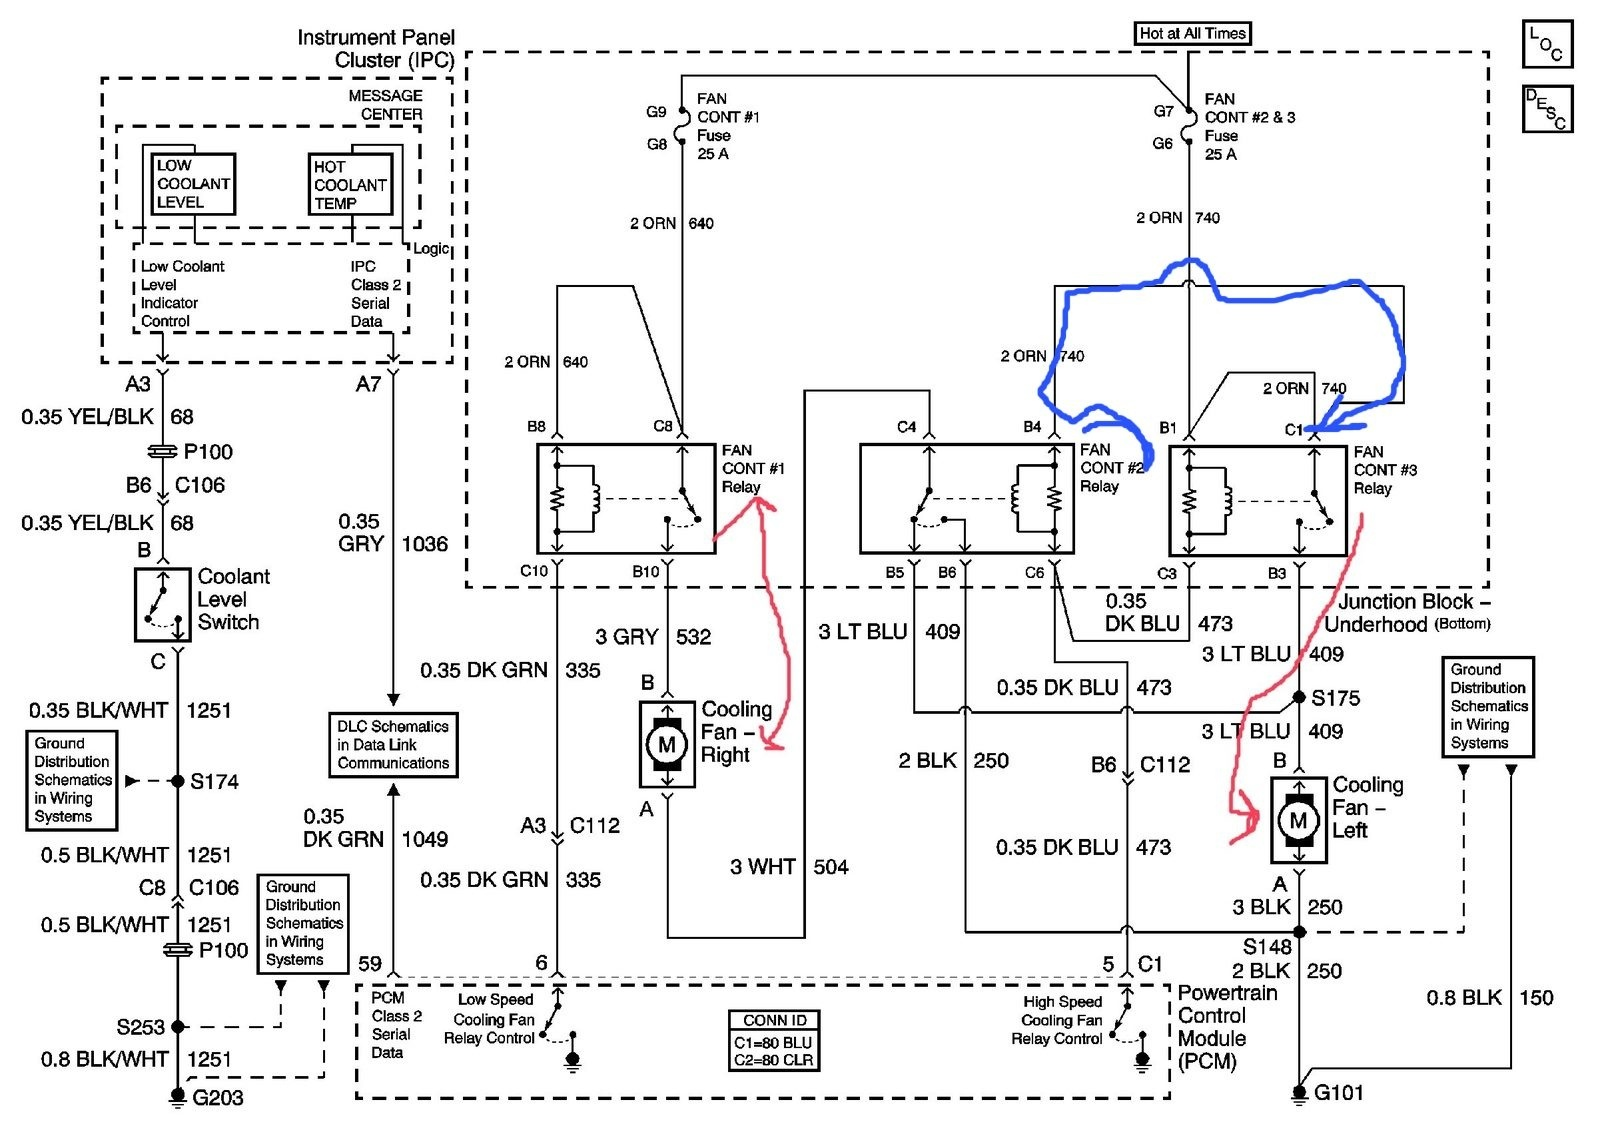 2004 Chevy Malibu Fuse Box Diagram Wiring Diagrams A Of Fuses Classic Library Rh 47 Codingcommunity De 2012